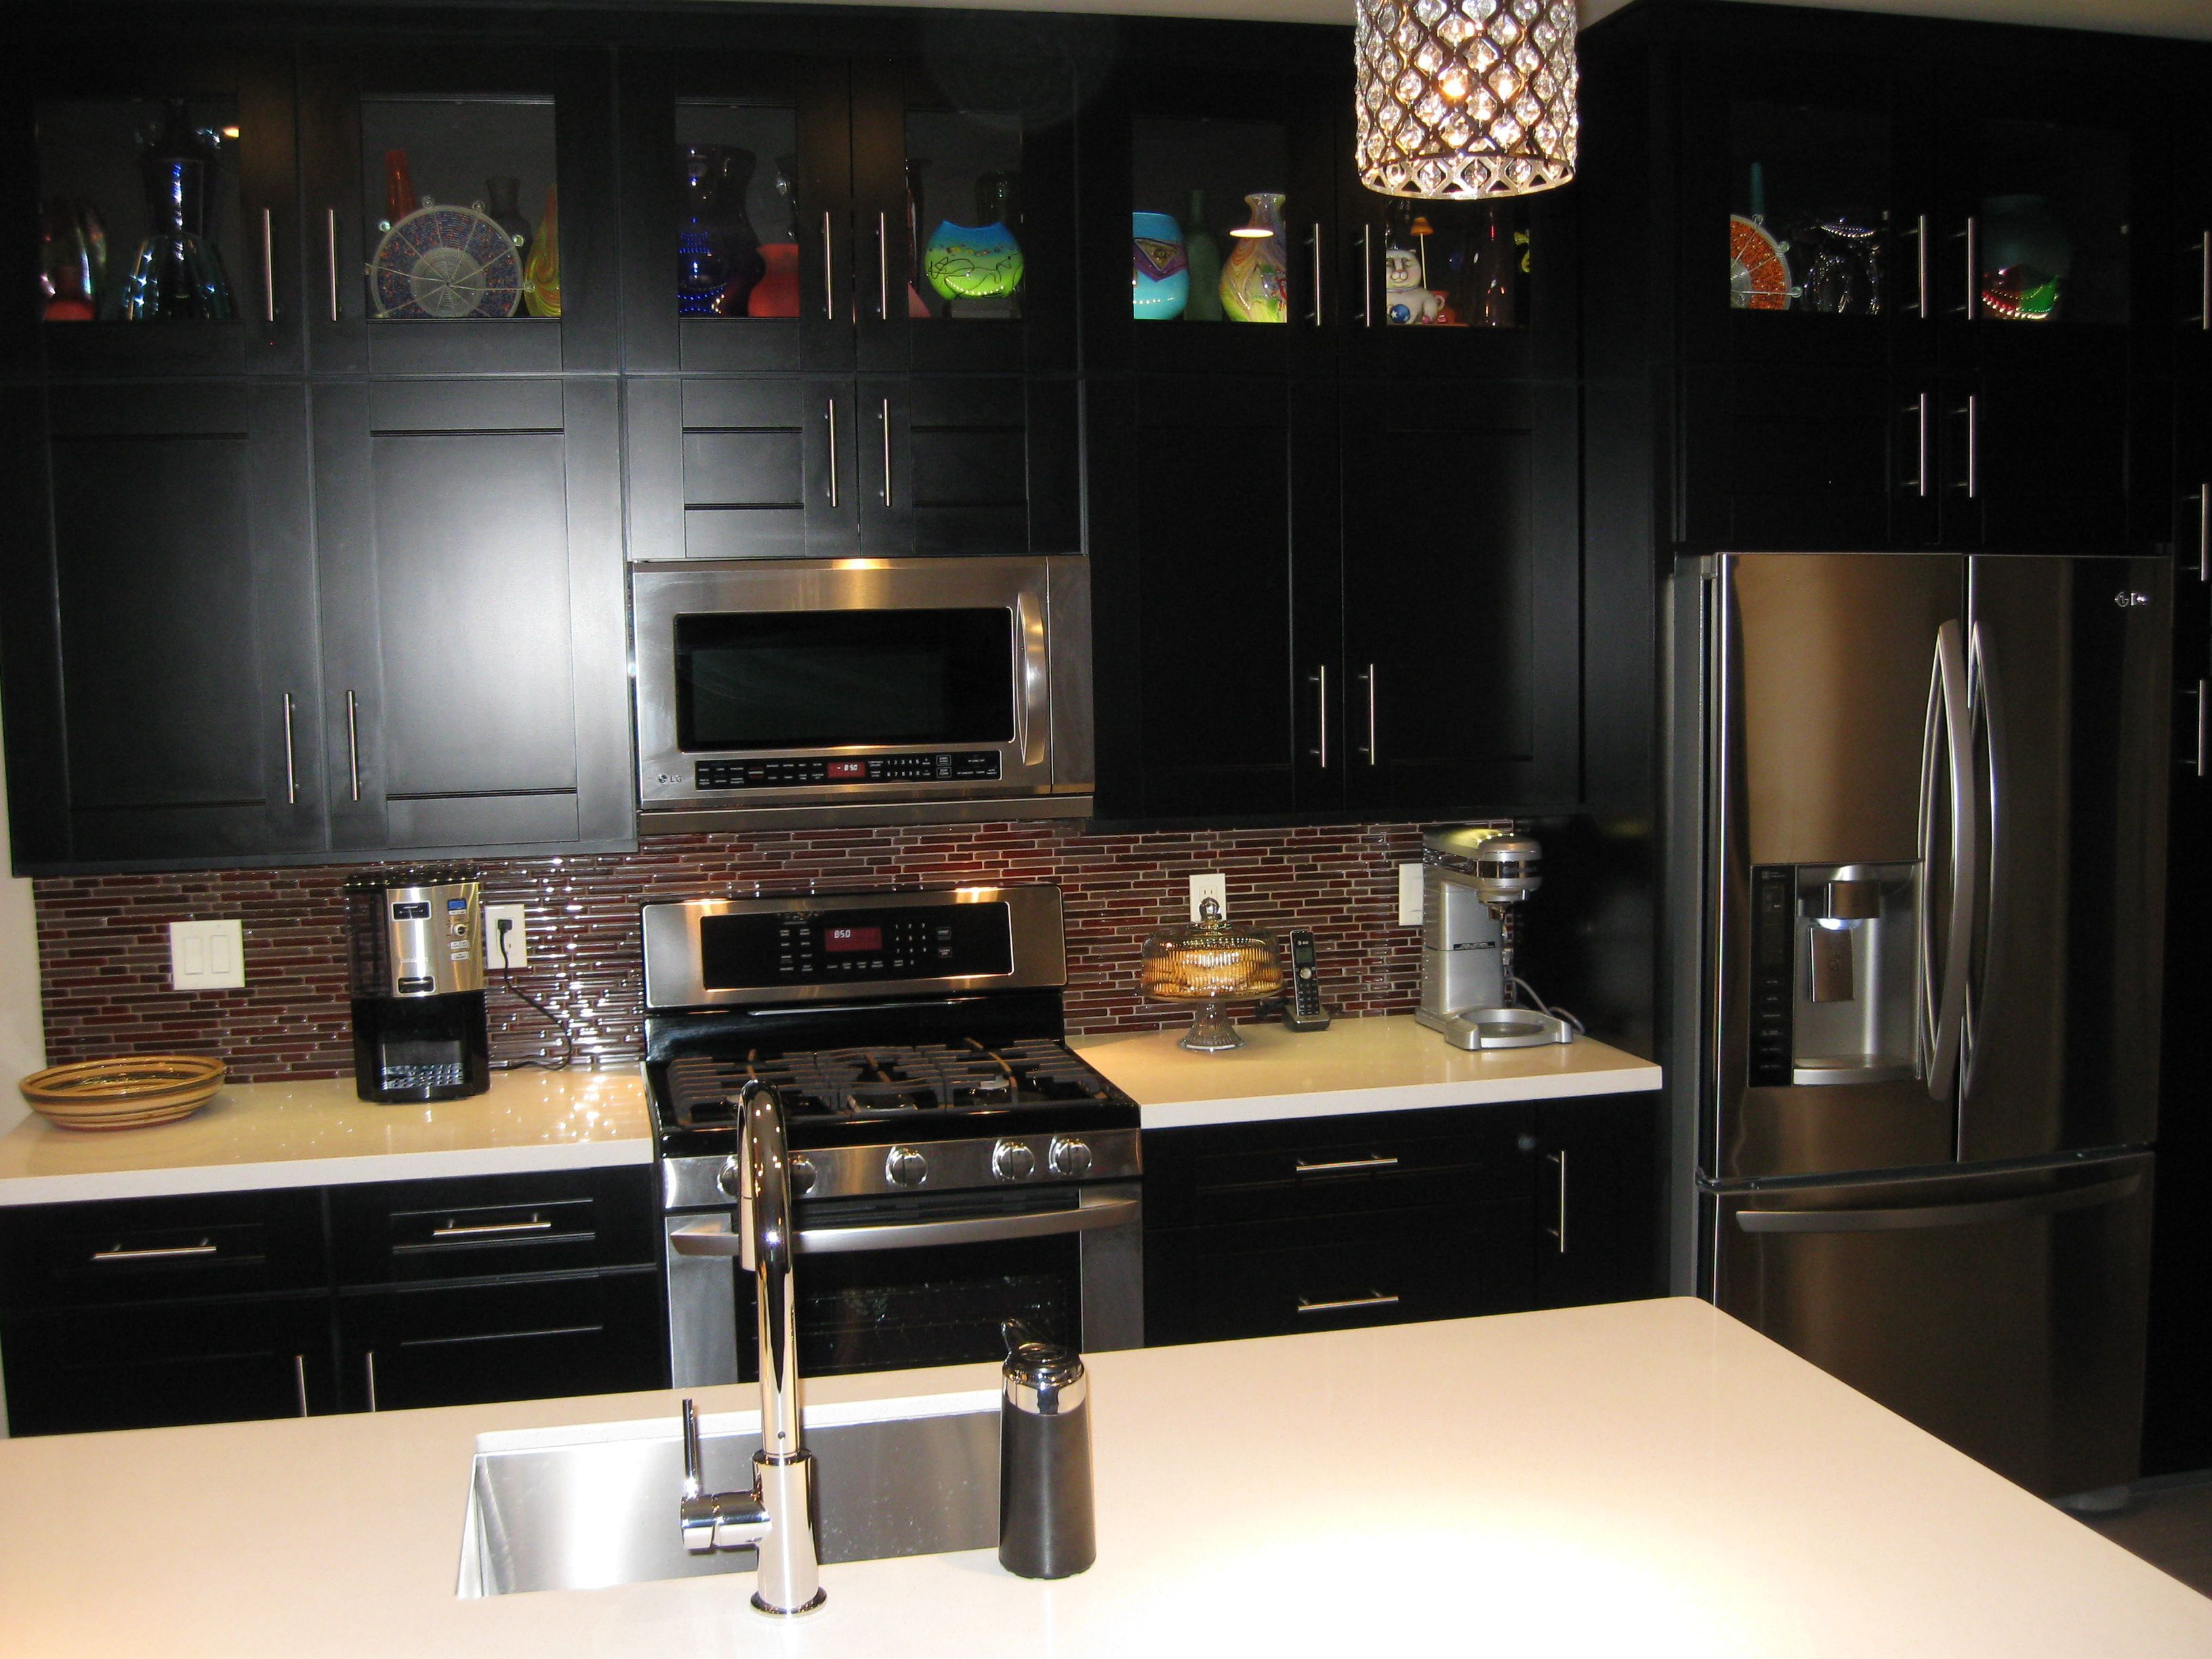 luxury cabinets j canada sink reviews of closet in size laundry island and photos oak stock martha large for room home folders stewart depth fabuwood file truckload narrow kitchen hardware wall beautiful styles organizer obligatory custom display granite cabinet sale depot